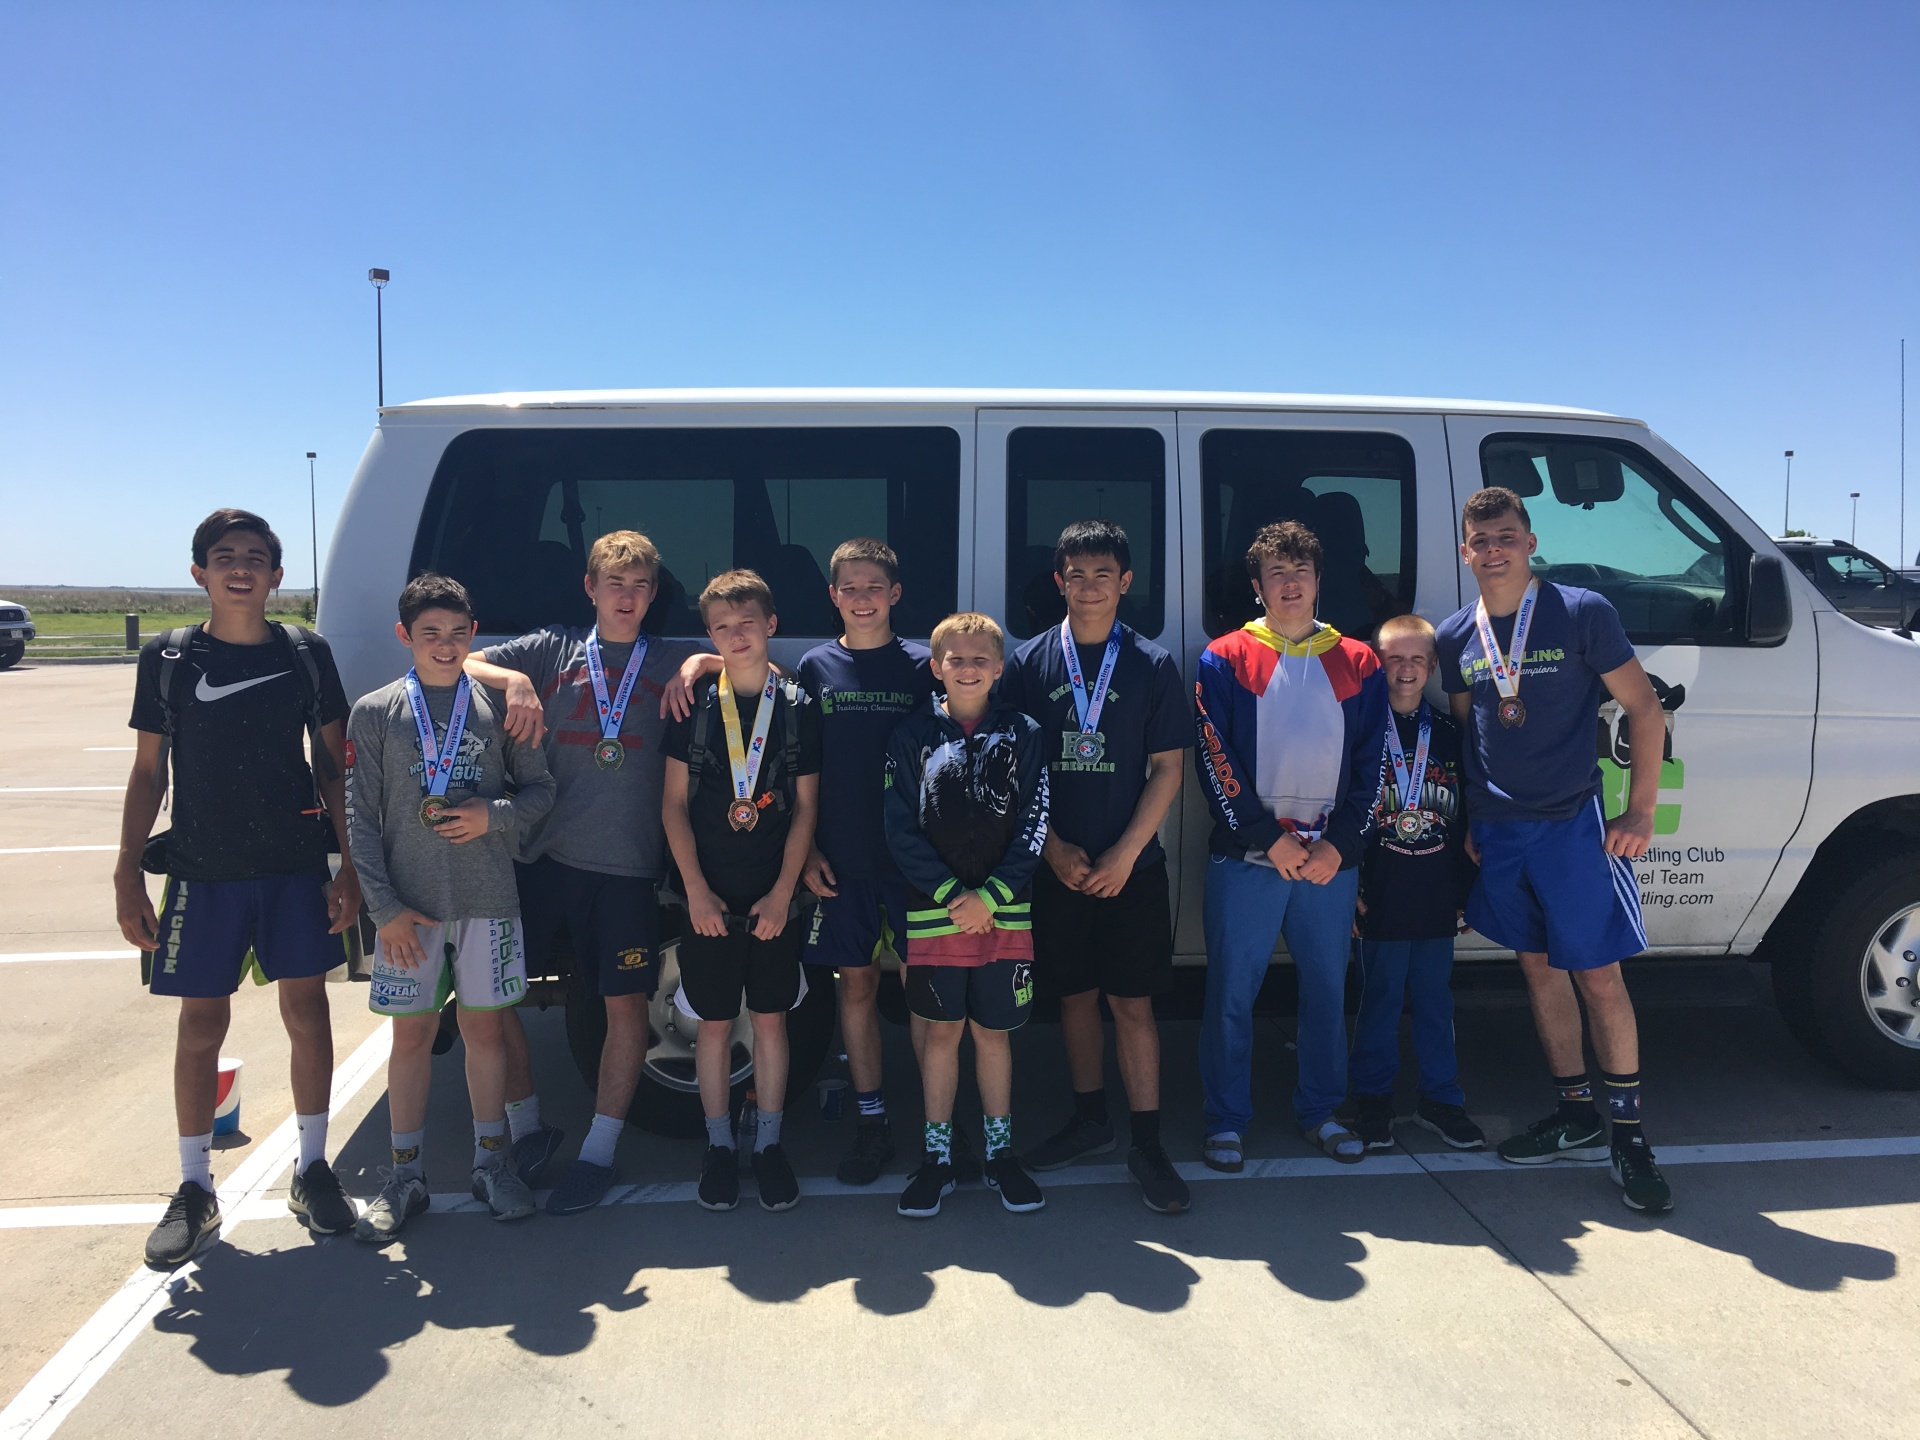 Bear Cave Van Travels To Dodge City, KS